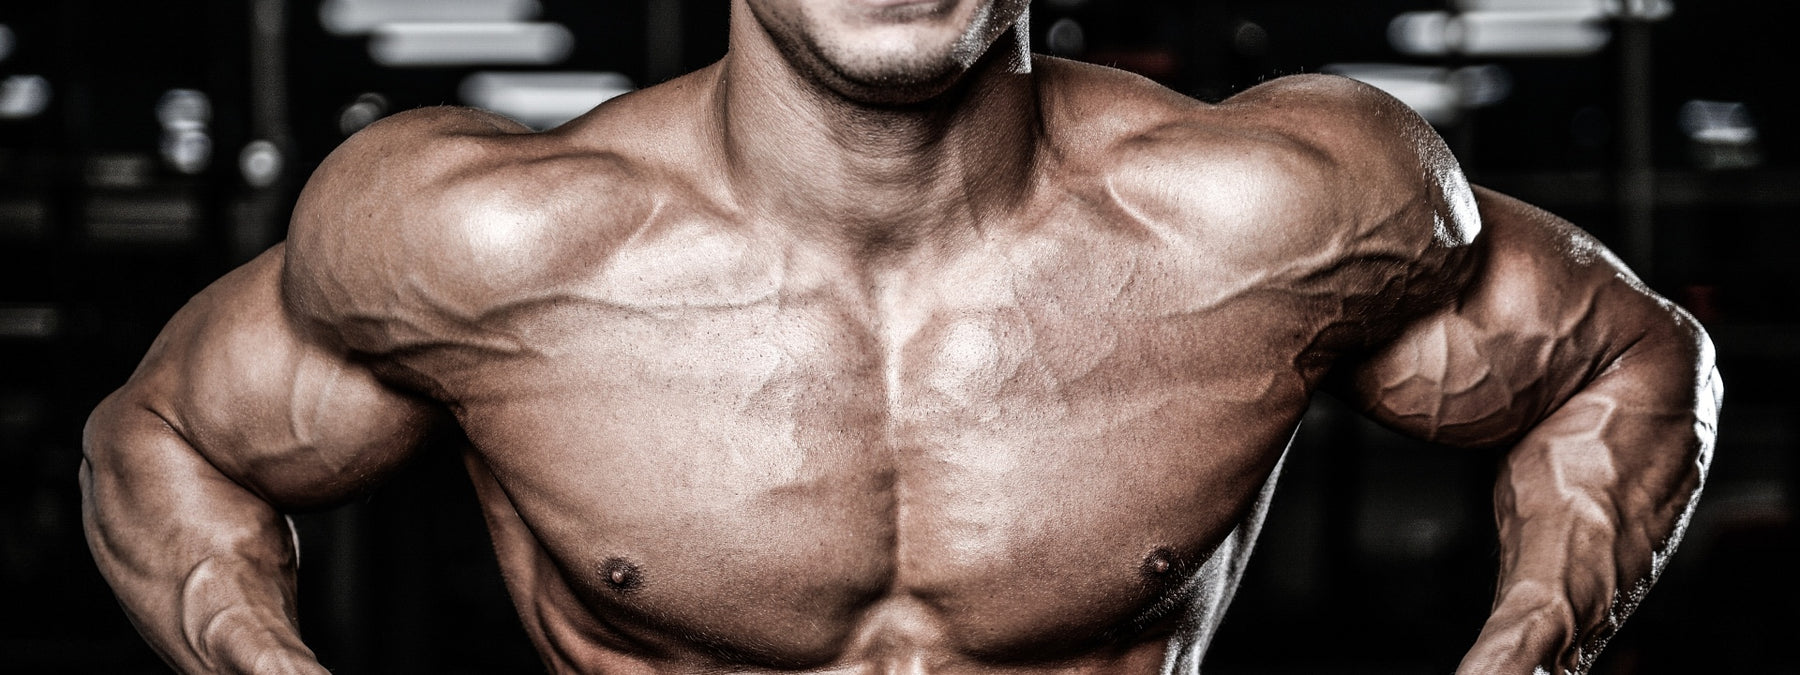 5 Best Triceps Exercises You've Never Heard Of